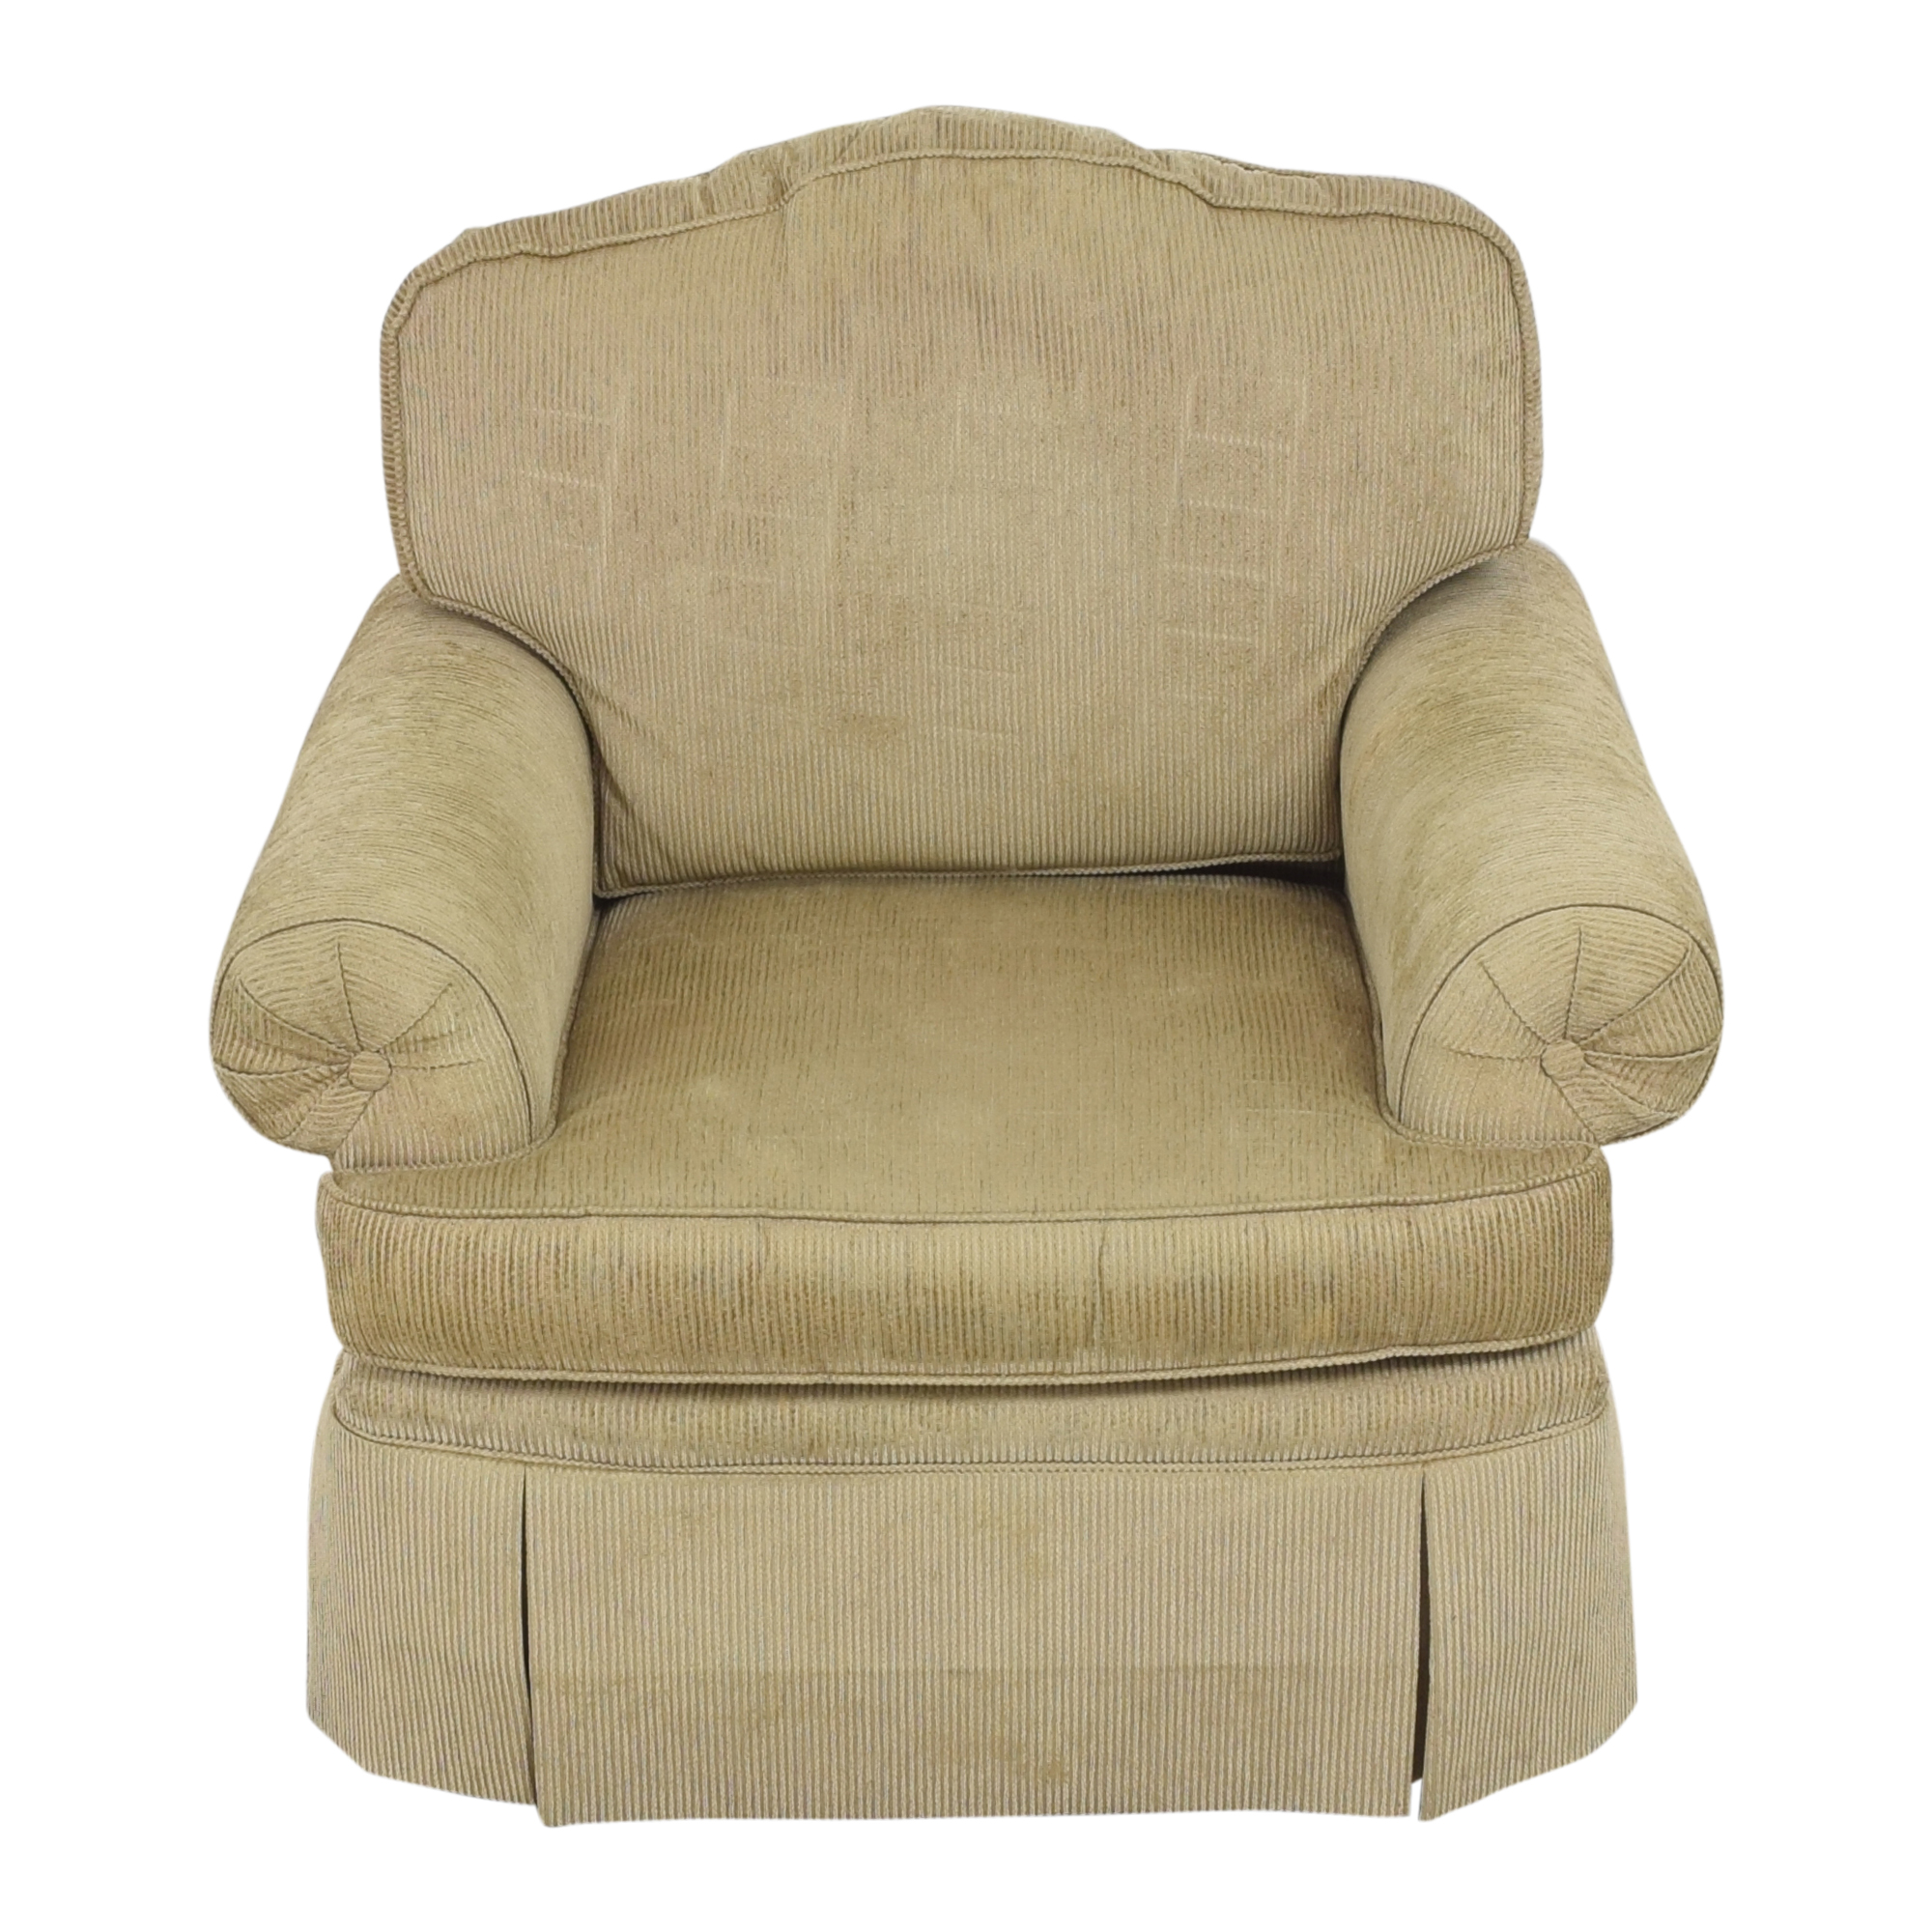 Drexel Heritage Drexel Heritage Skirted Club Chair second hand